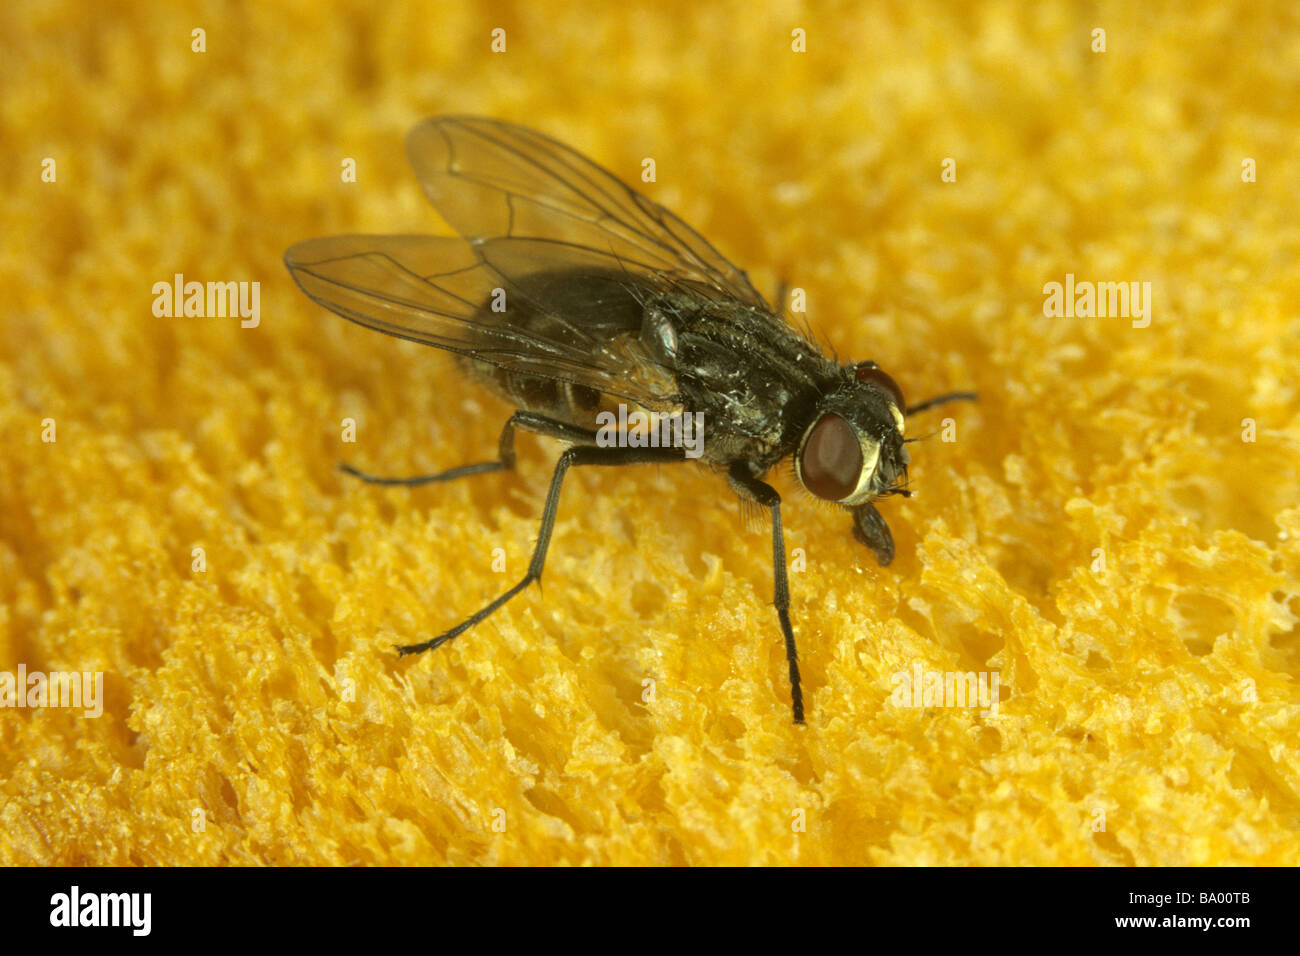 House Fly (Musca domestica) on bread - Stock Image